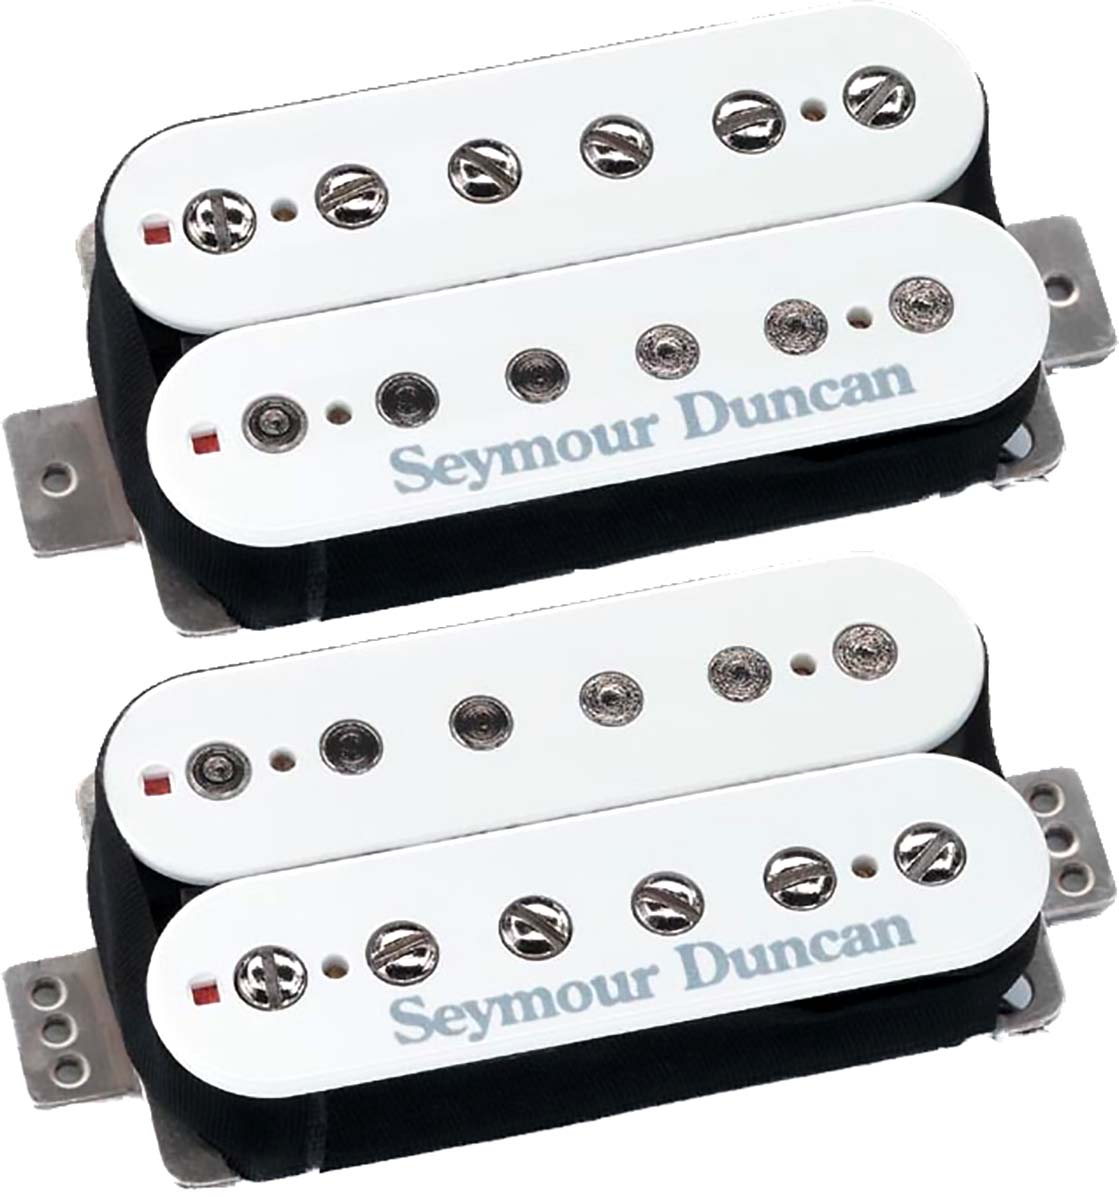 Seymour Duncan F-Spaced Hot Rodded Humbucker Set, SH-2n Neck + TB-4 JB  Bridge Pickups, White